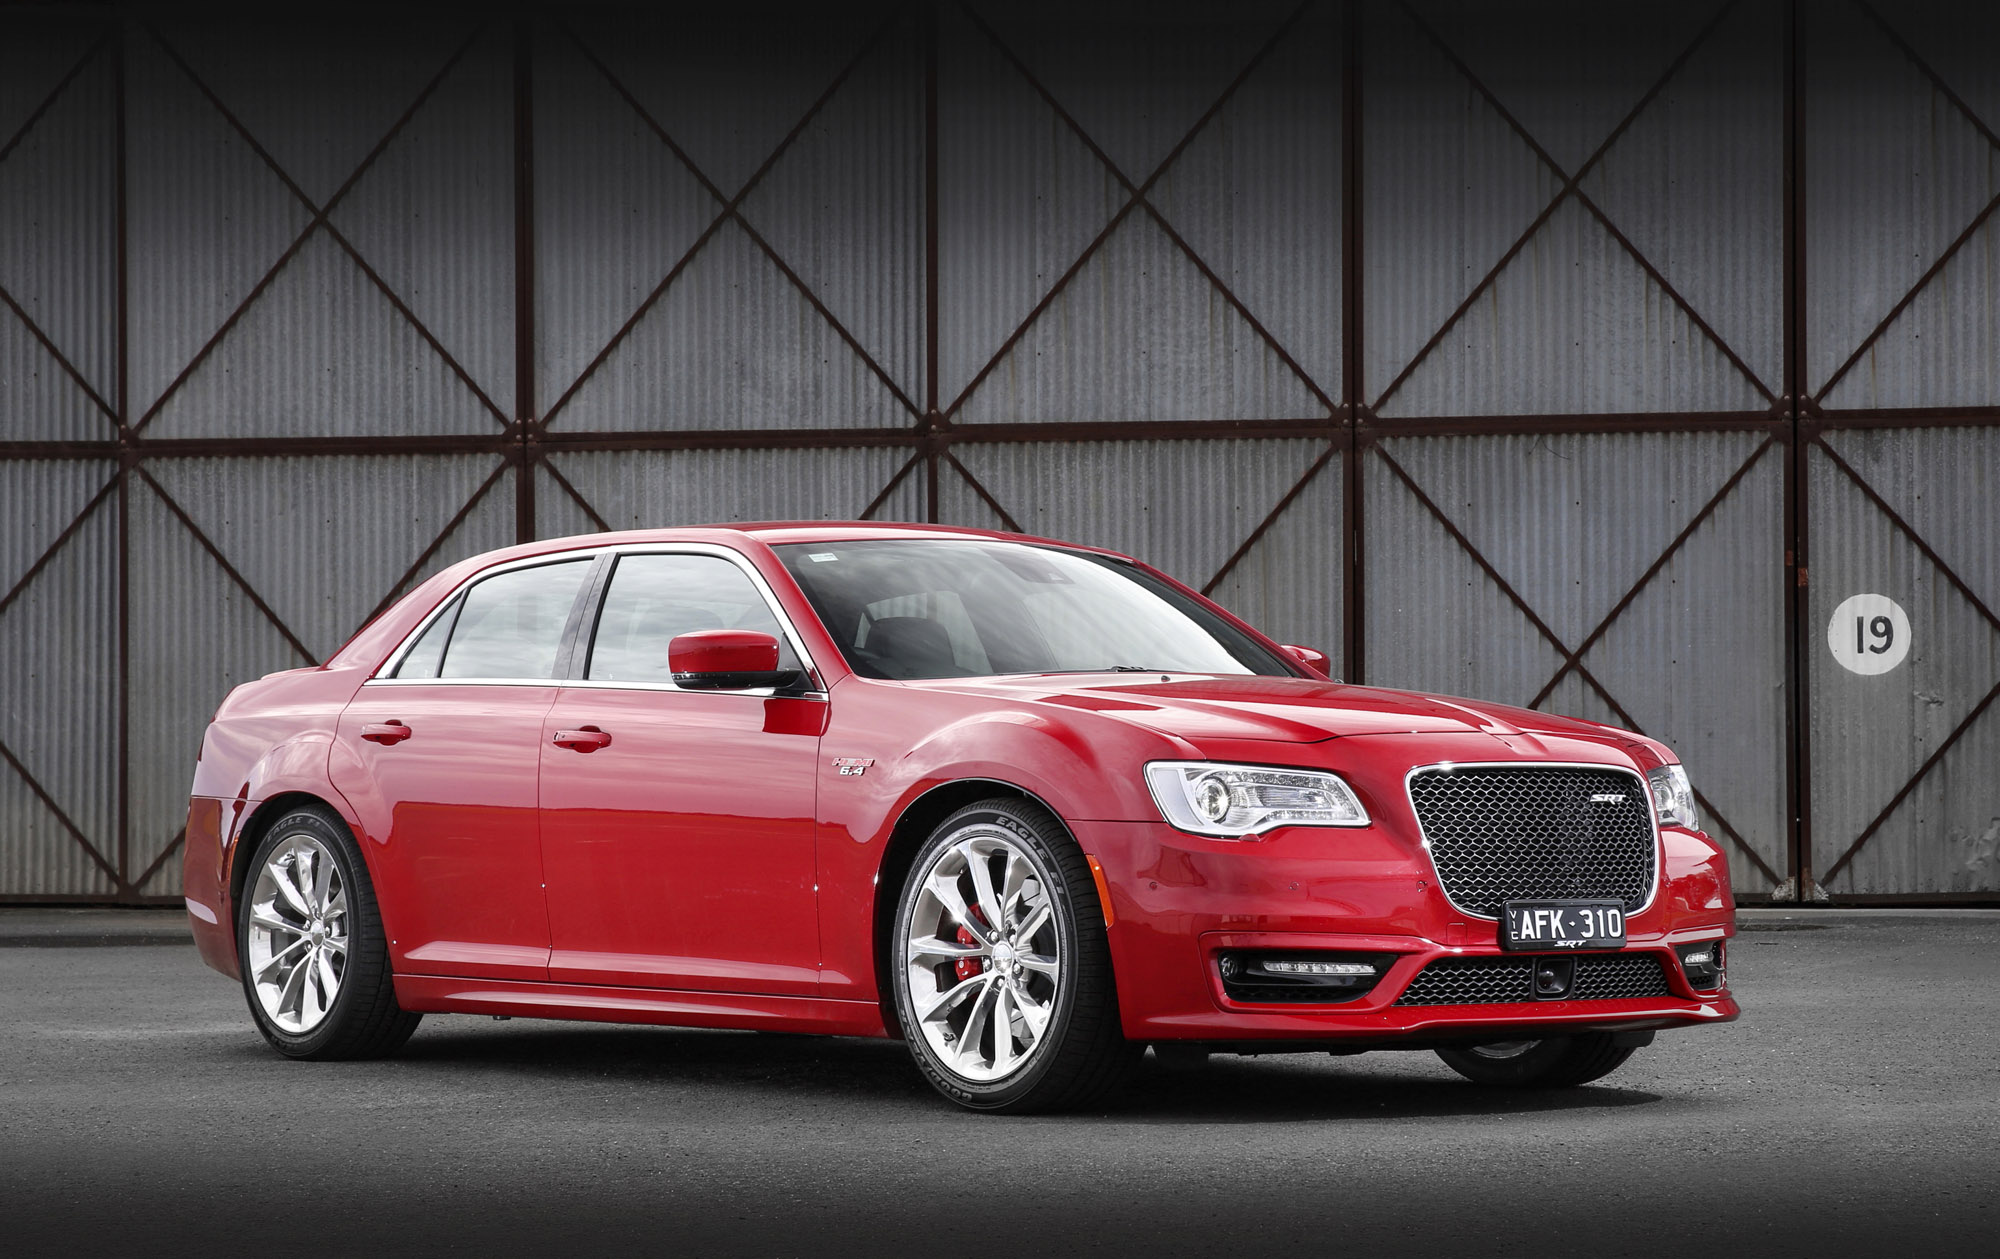 2015 chrysler 300 srt review photos caradvice. Black Bedroom Furniture Sets. Home Design Ideas